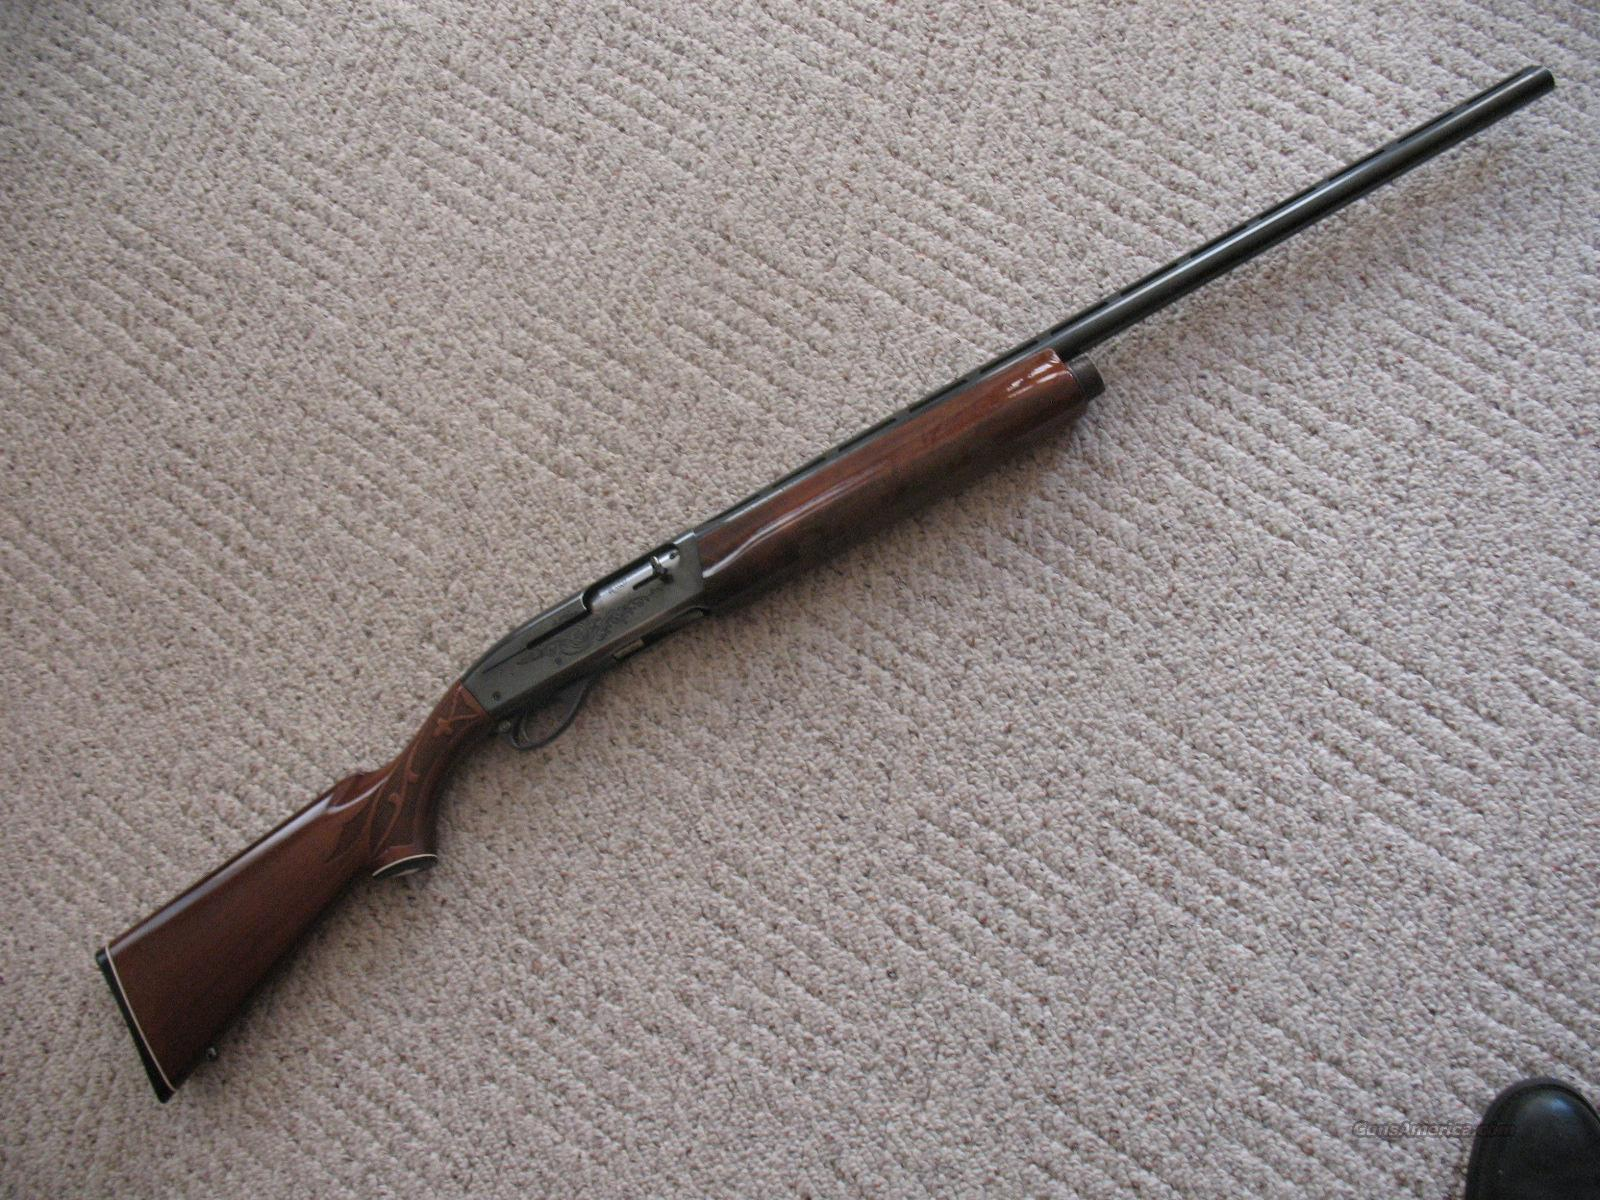 Remington Model 1100 12 Ga. shotgun  Guns > Shotguns > Remington Shotguns  > Autoloaders > Hunting